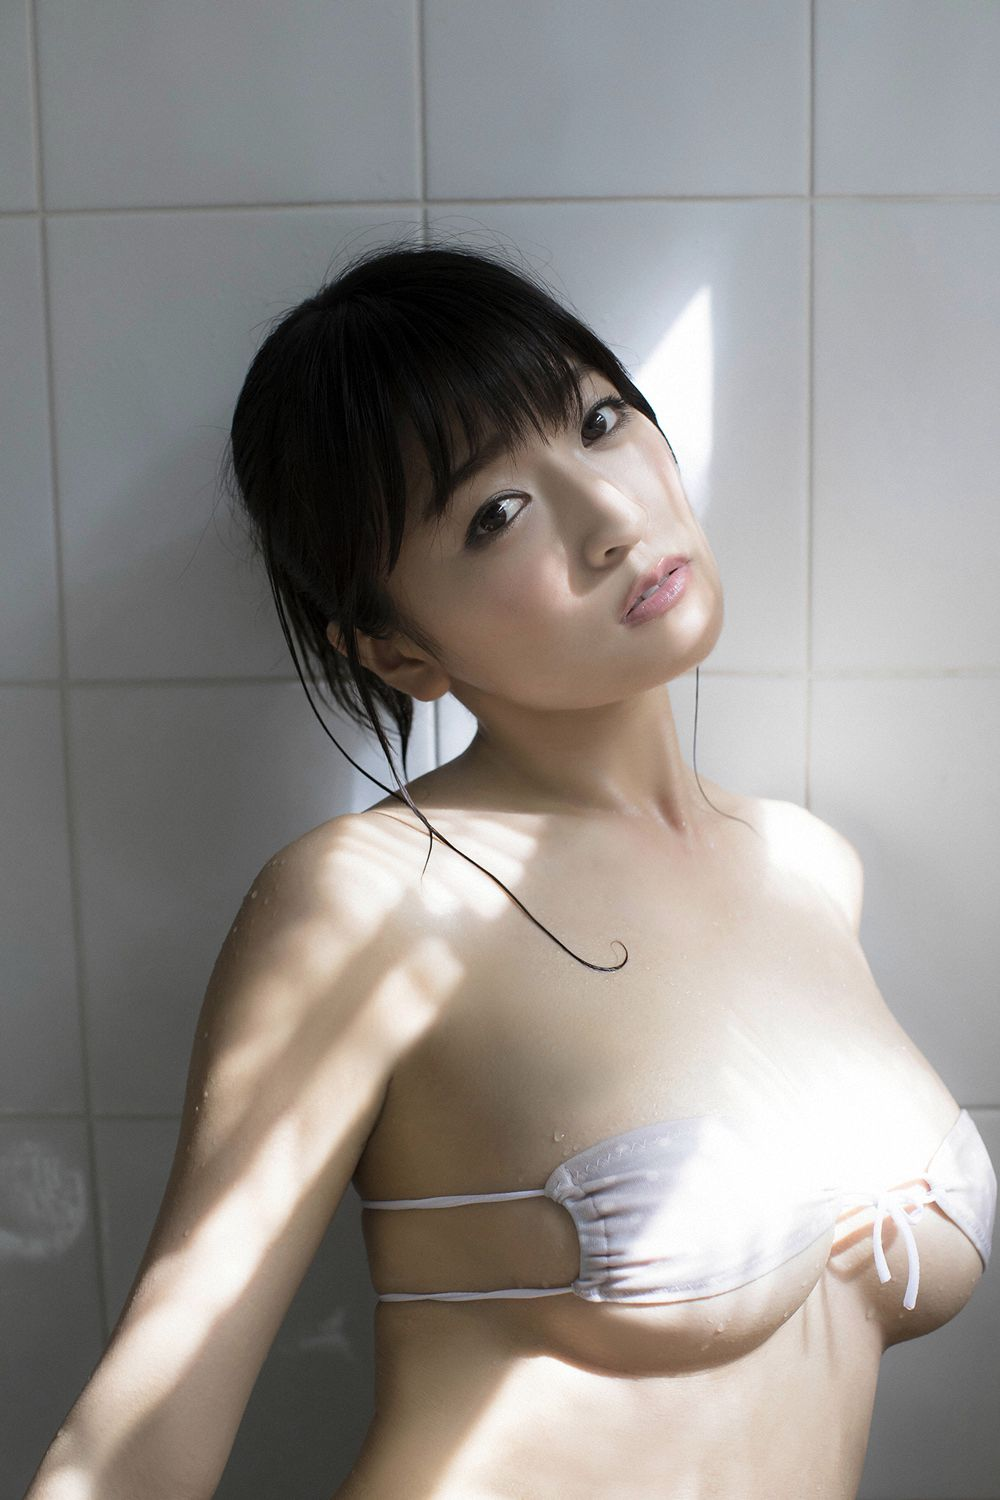 This is a girl with big tits who wants to be a popular girl088